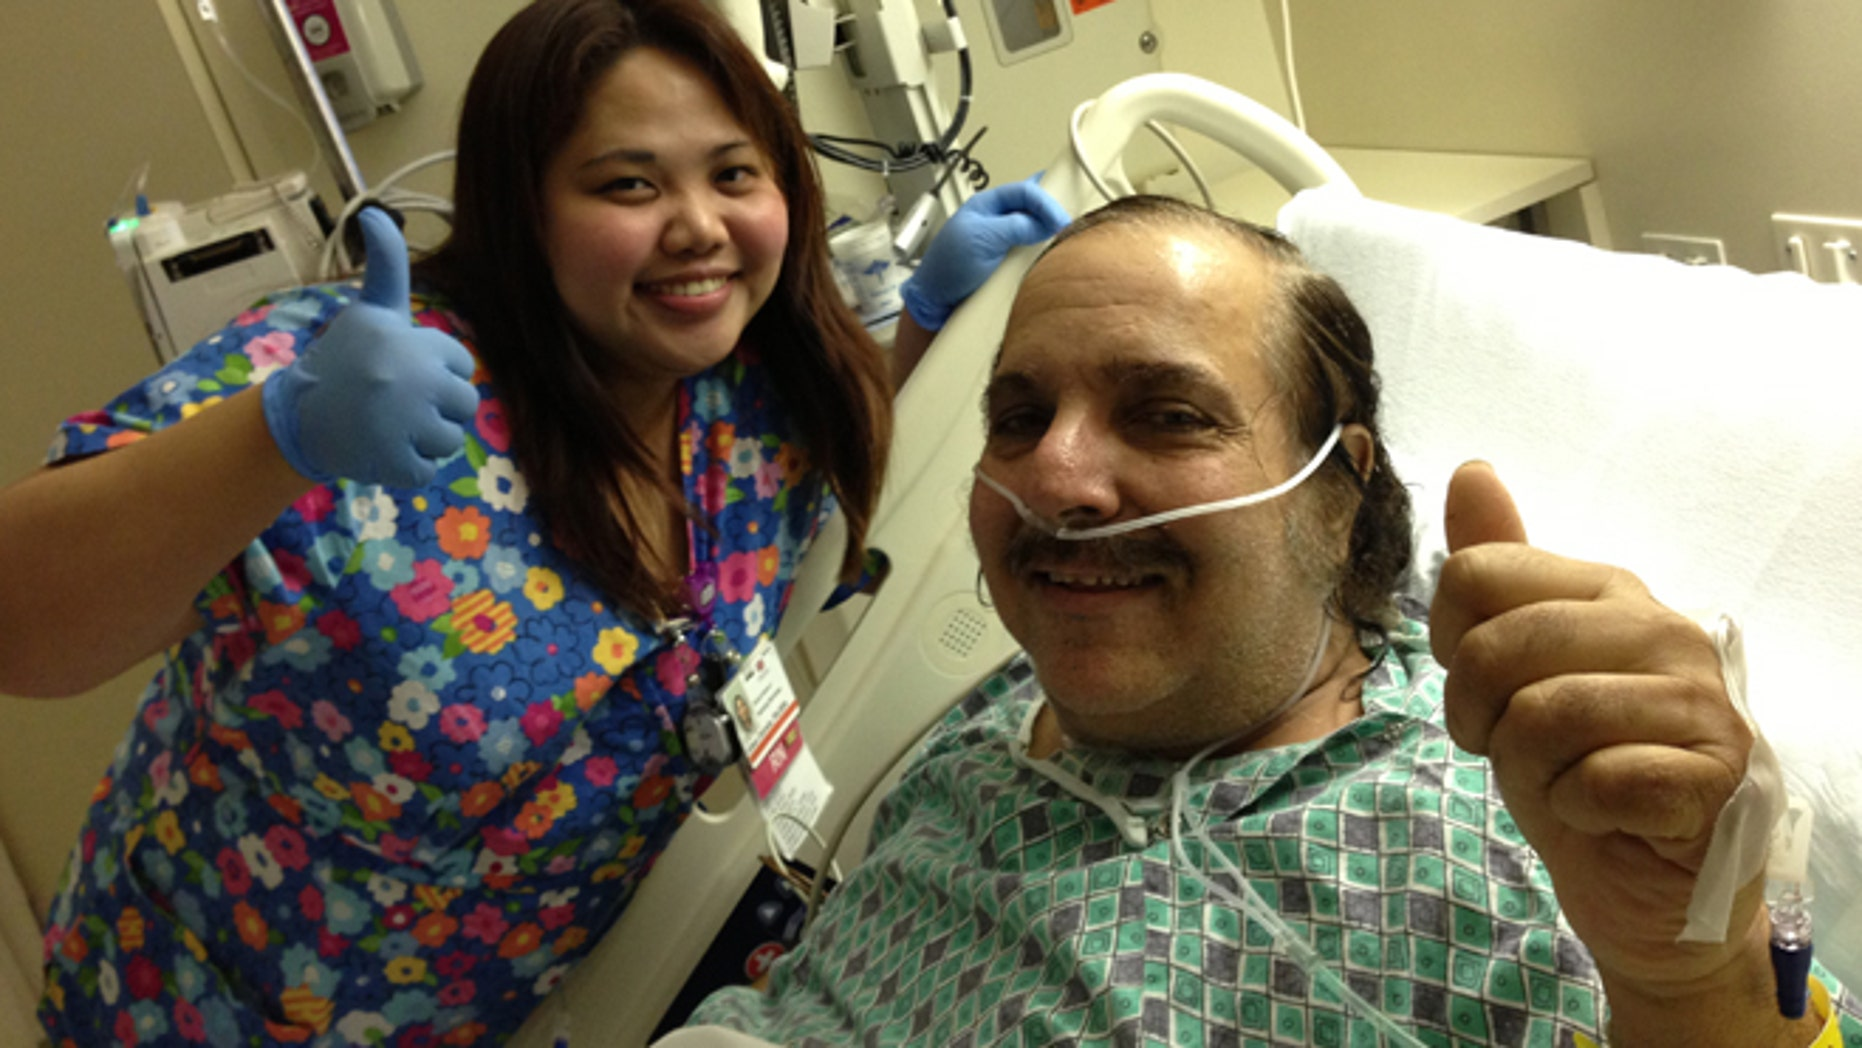 Ron Jeremy poses with one of his nurses while in the hospital.